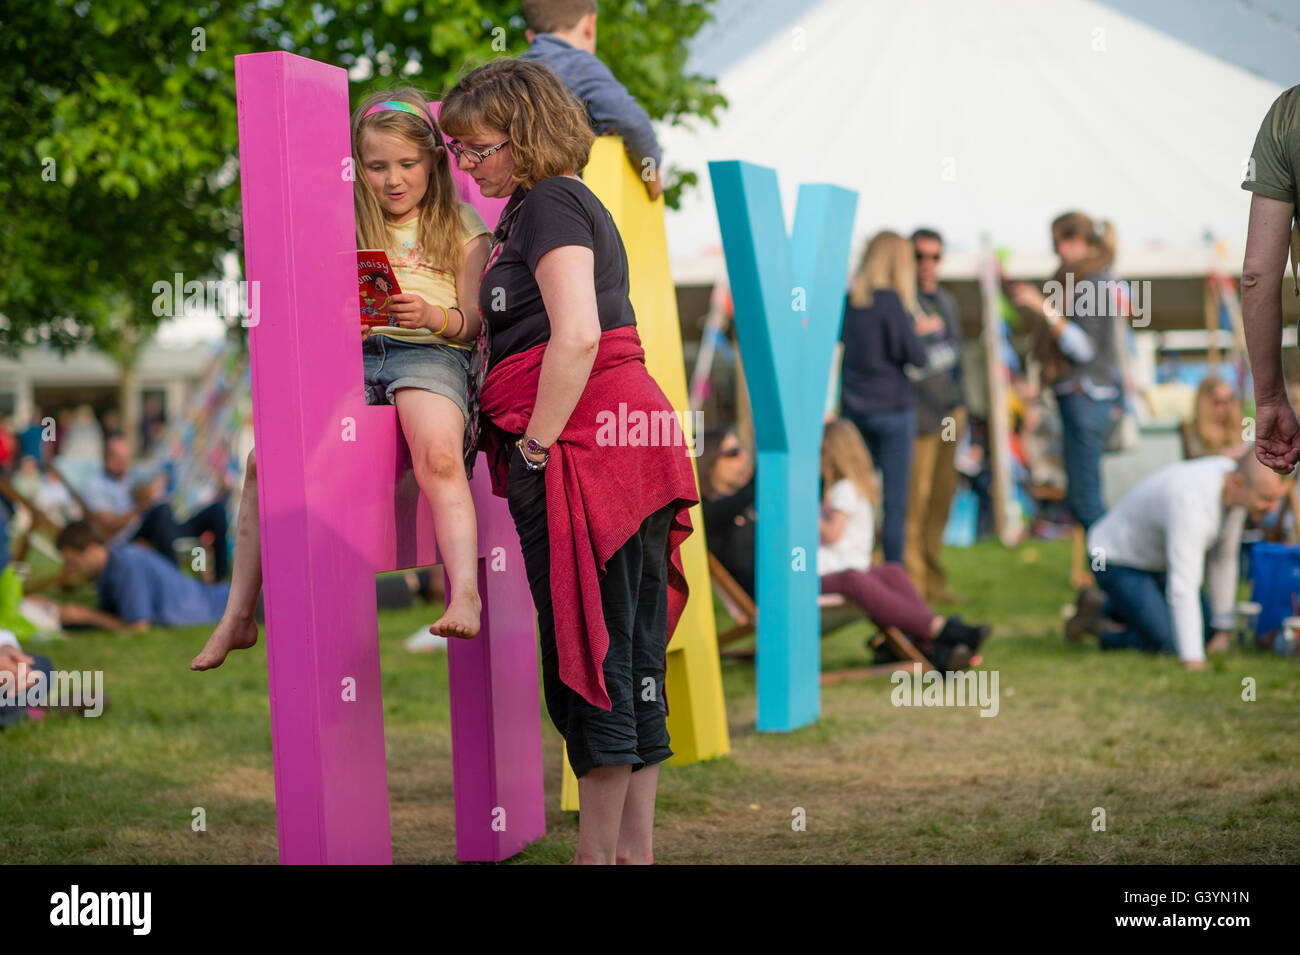 A mother and child daughter girl  visiting attending enjoying themselves with one of the big signs at  the Hay Festival - Stock Image